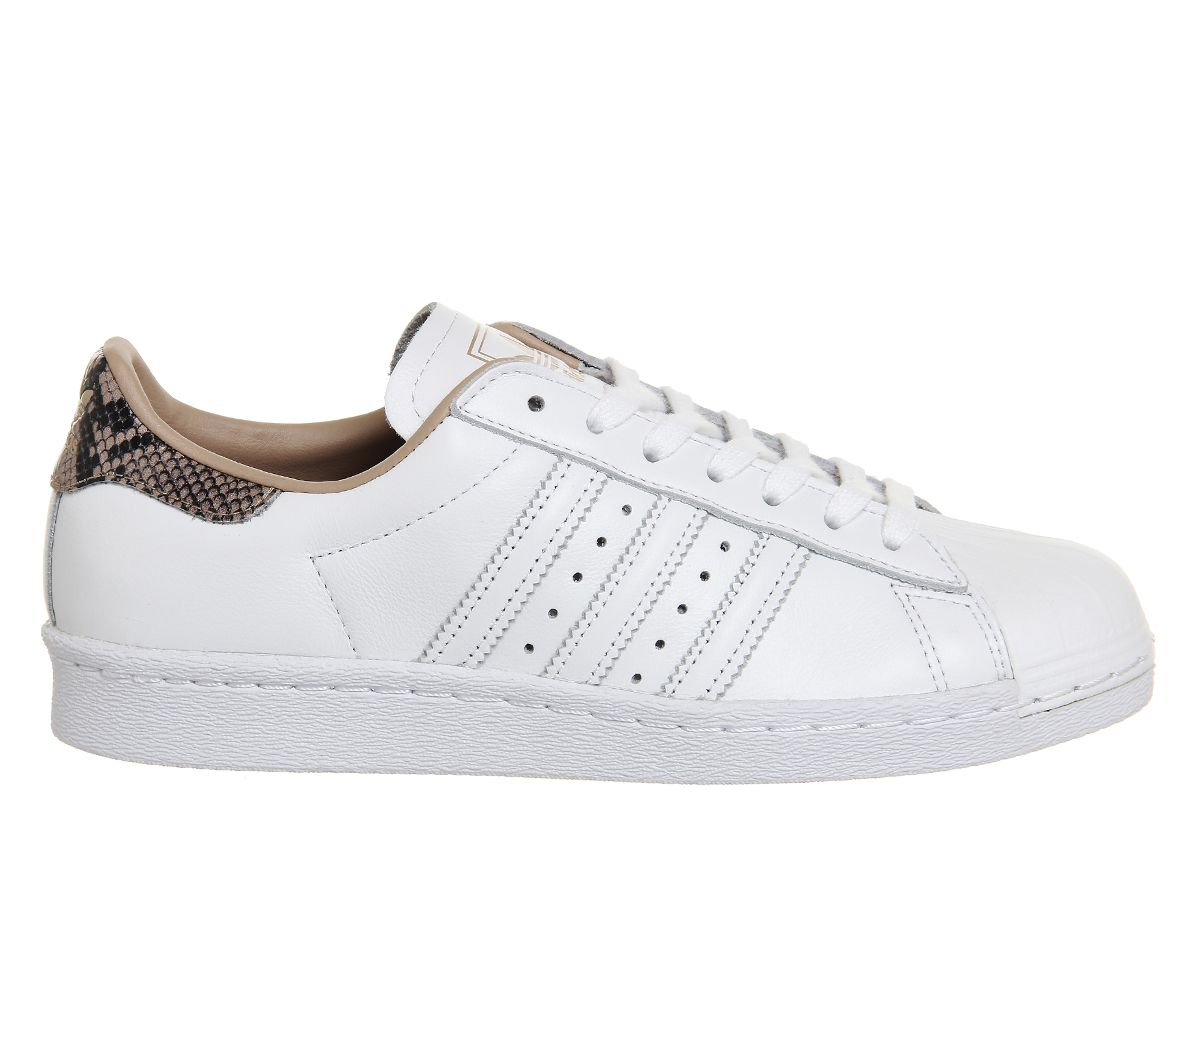 adidas superstar 80s white rose snake exclusive